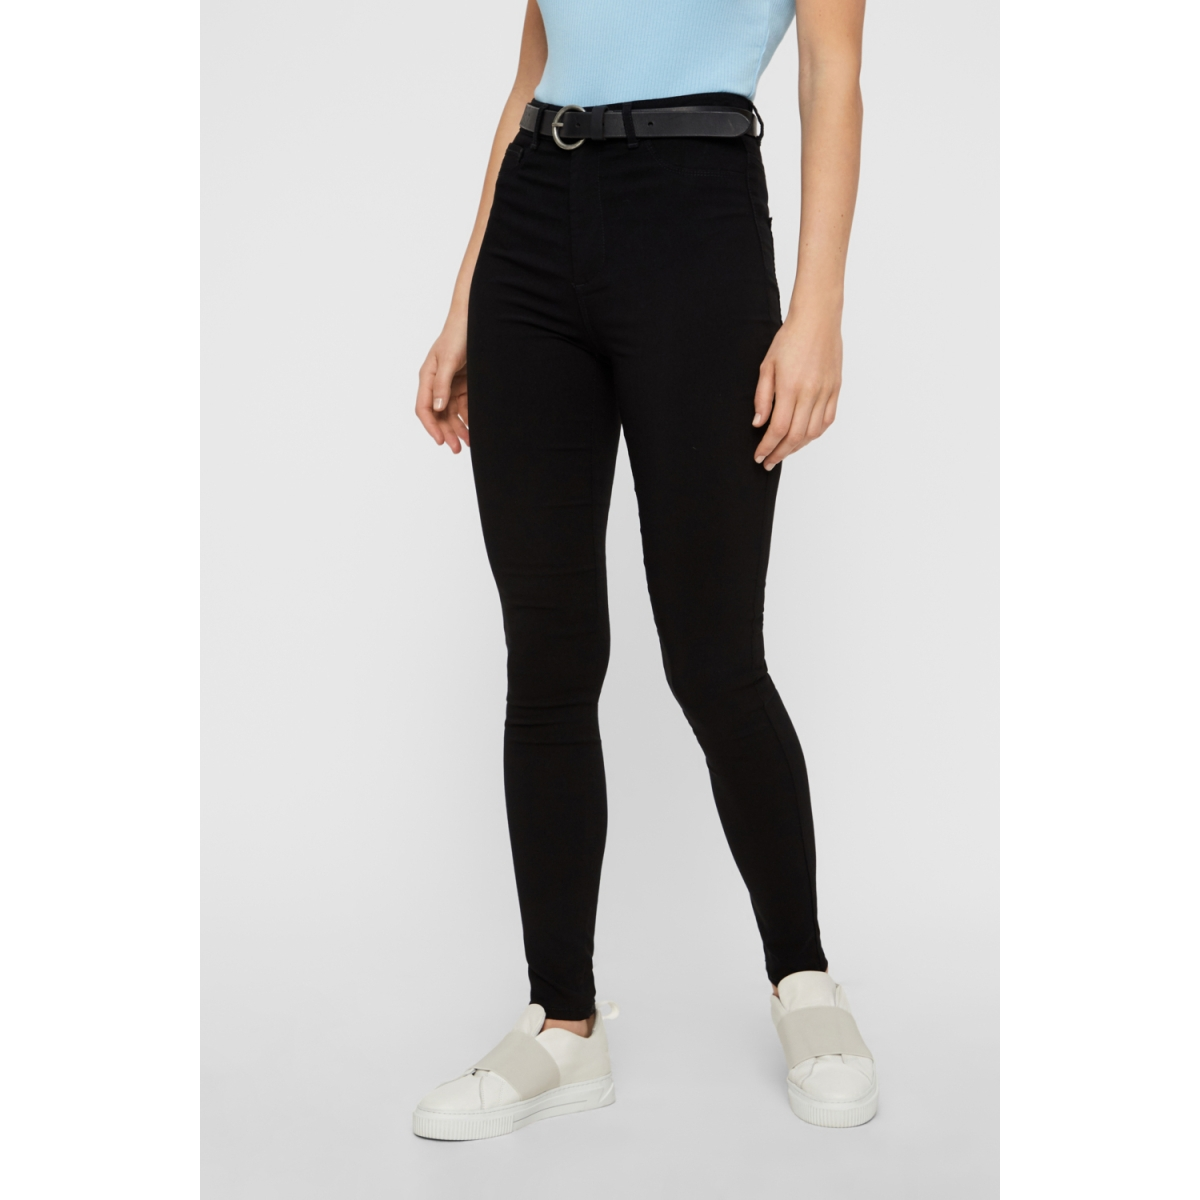 pchighskin wear jeggings noos 17080560 pieces jeans black